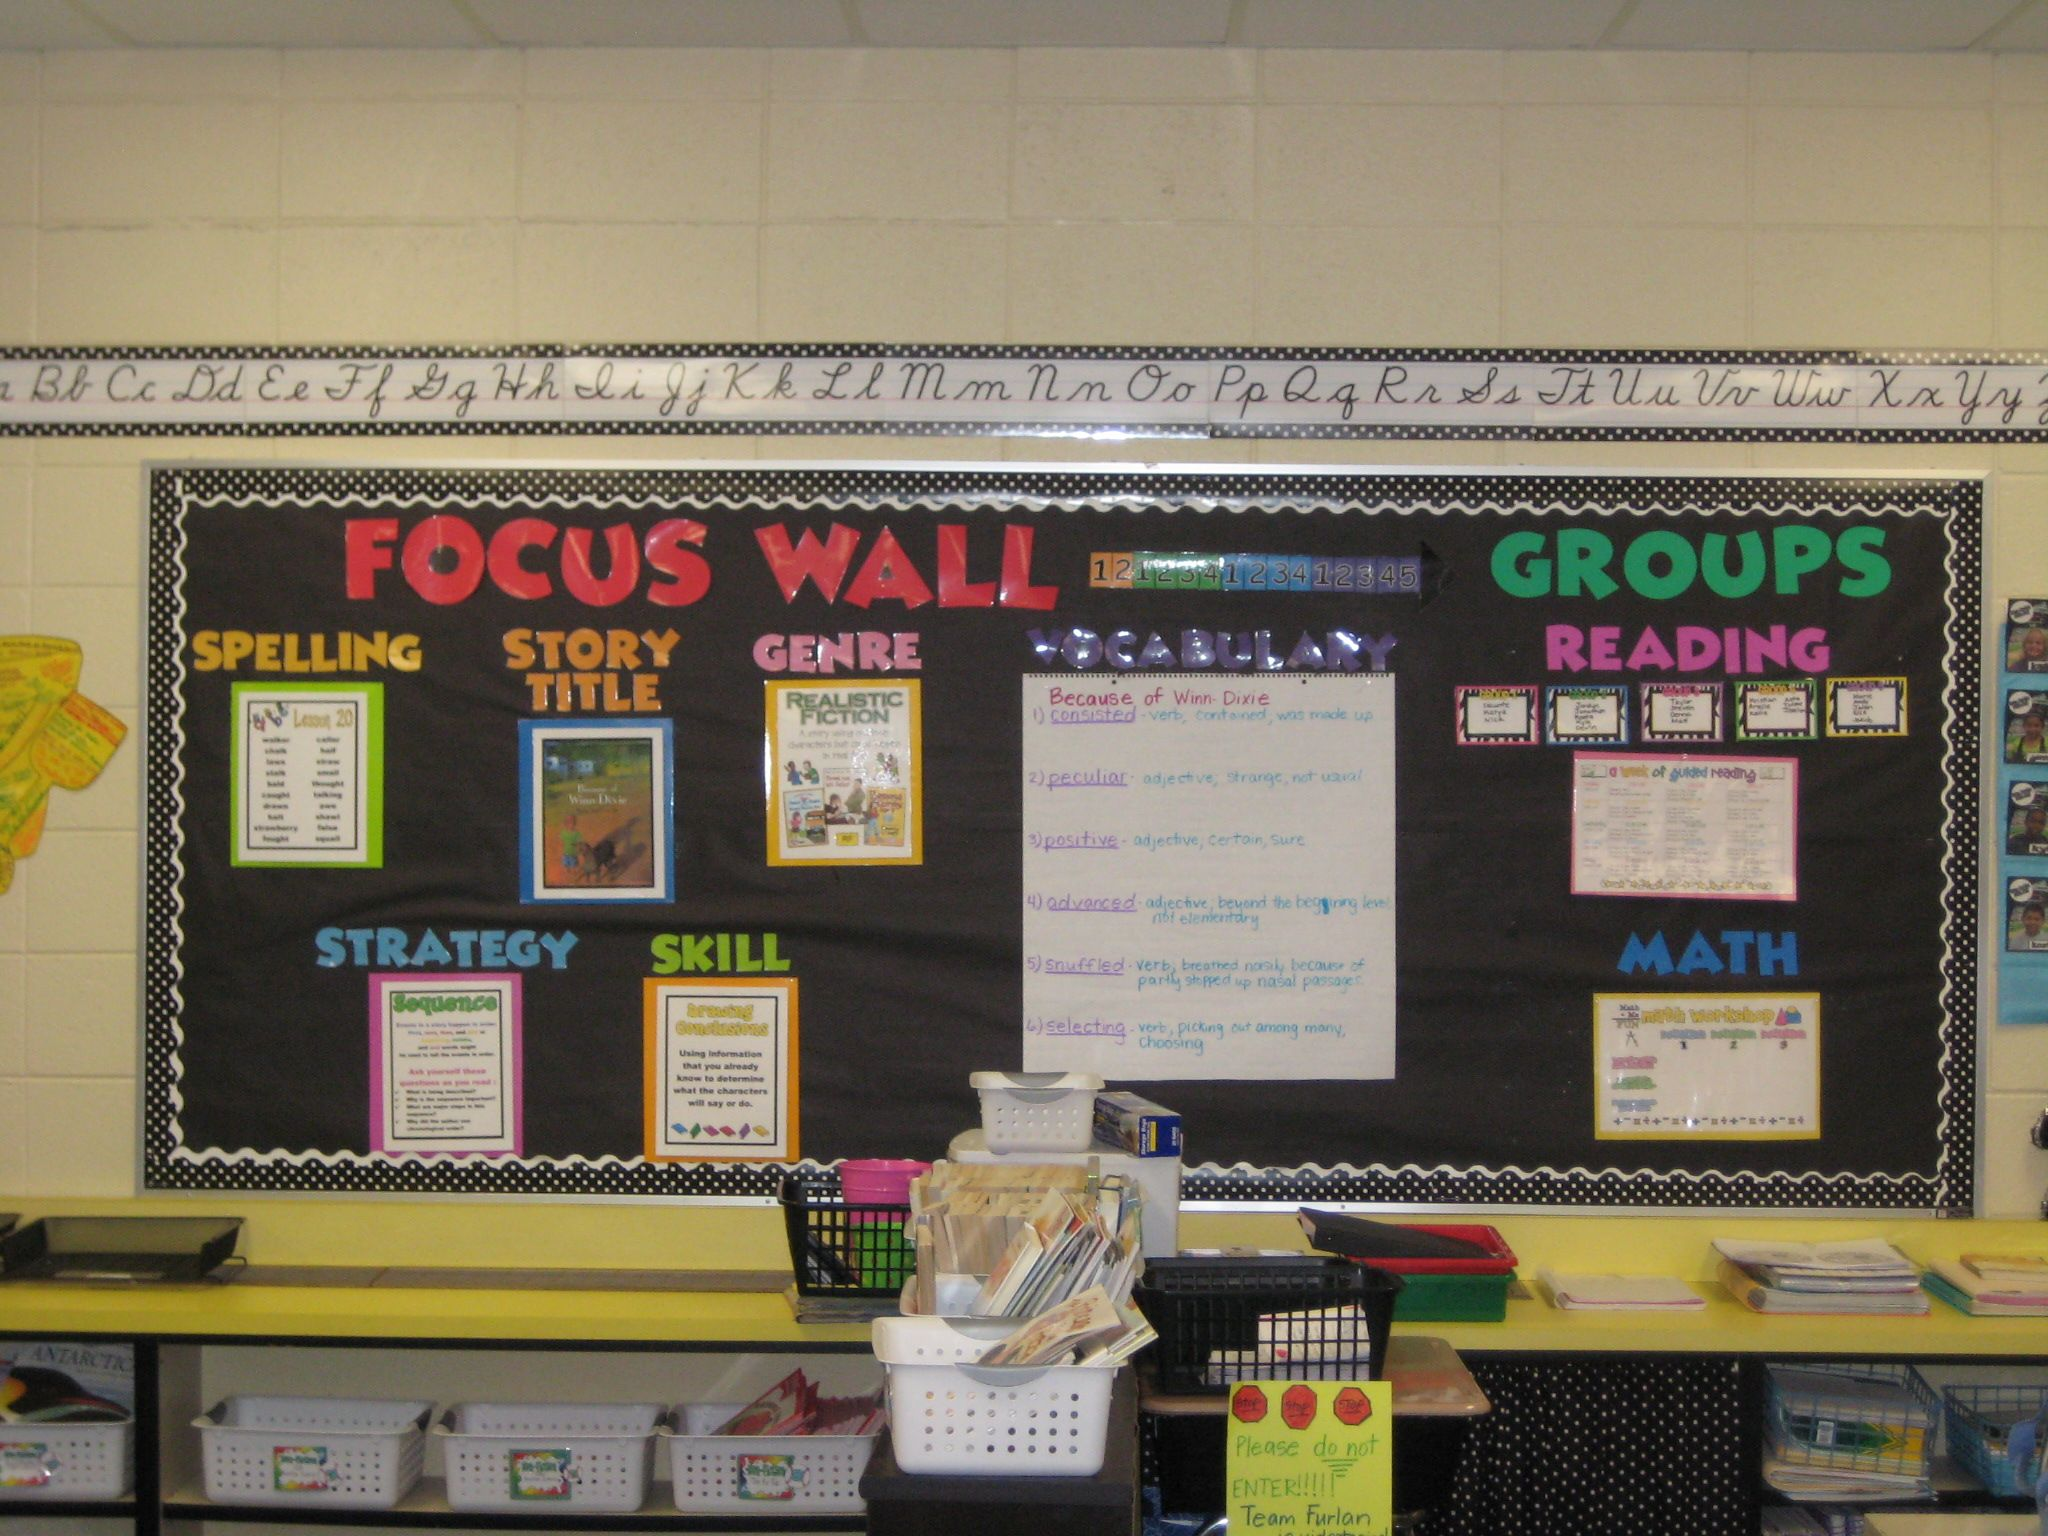 324 best images about classroom wall ideas on pinterest - Wall Board Ideas